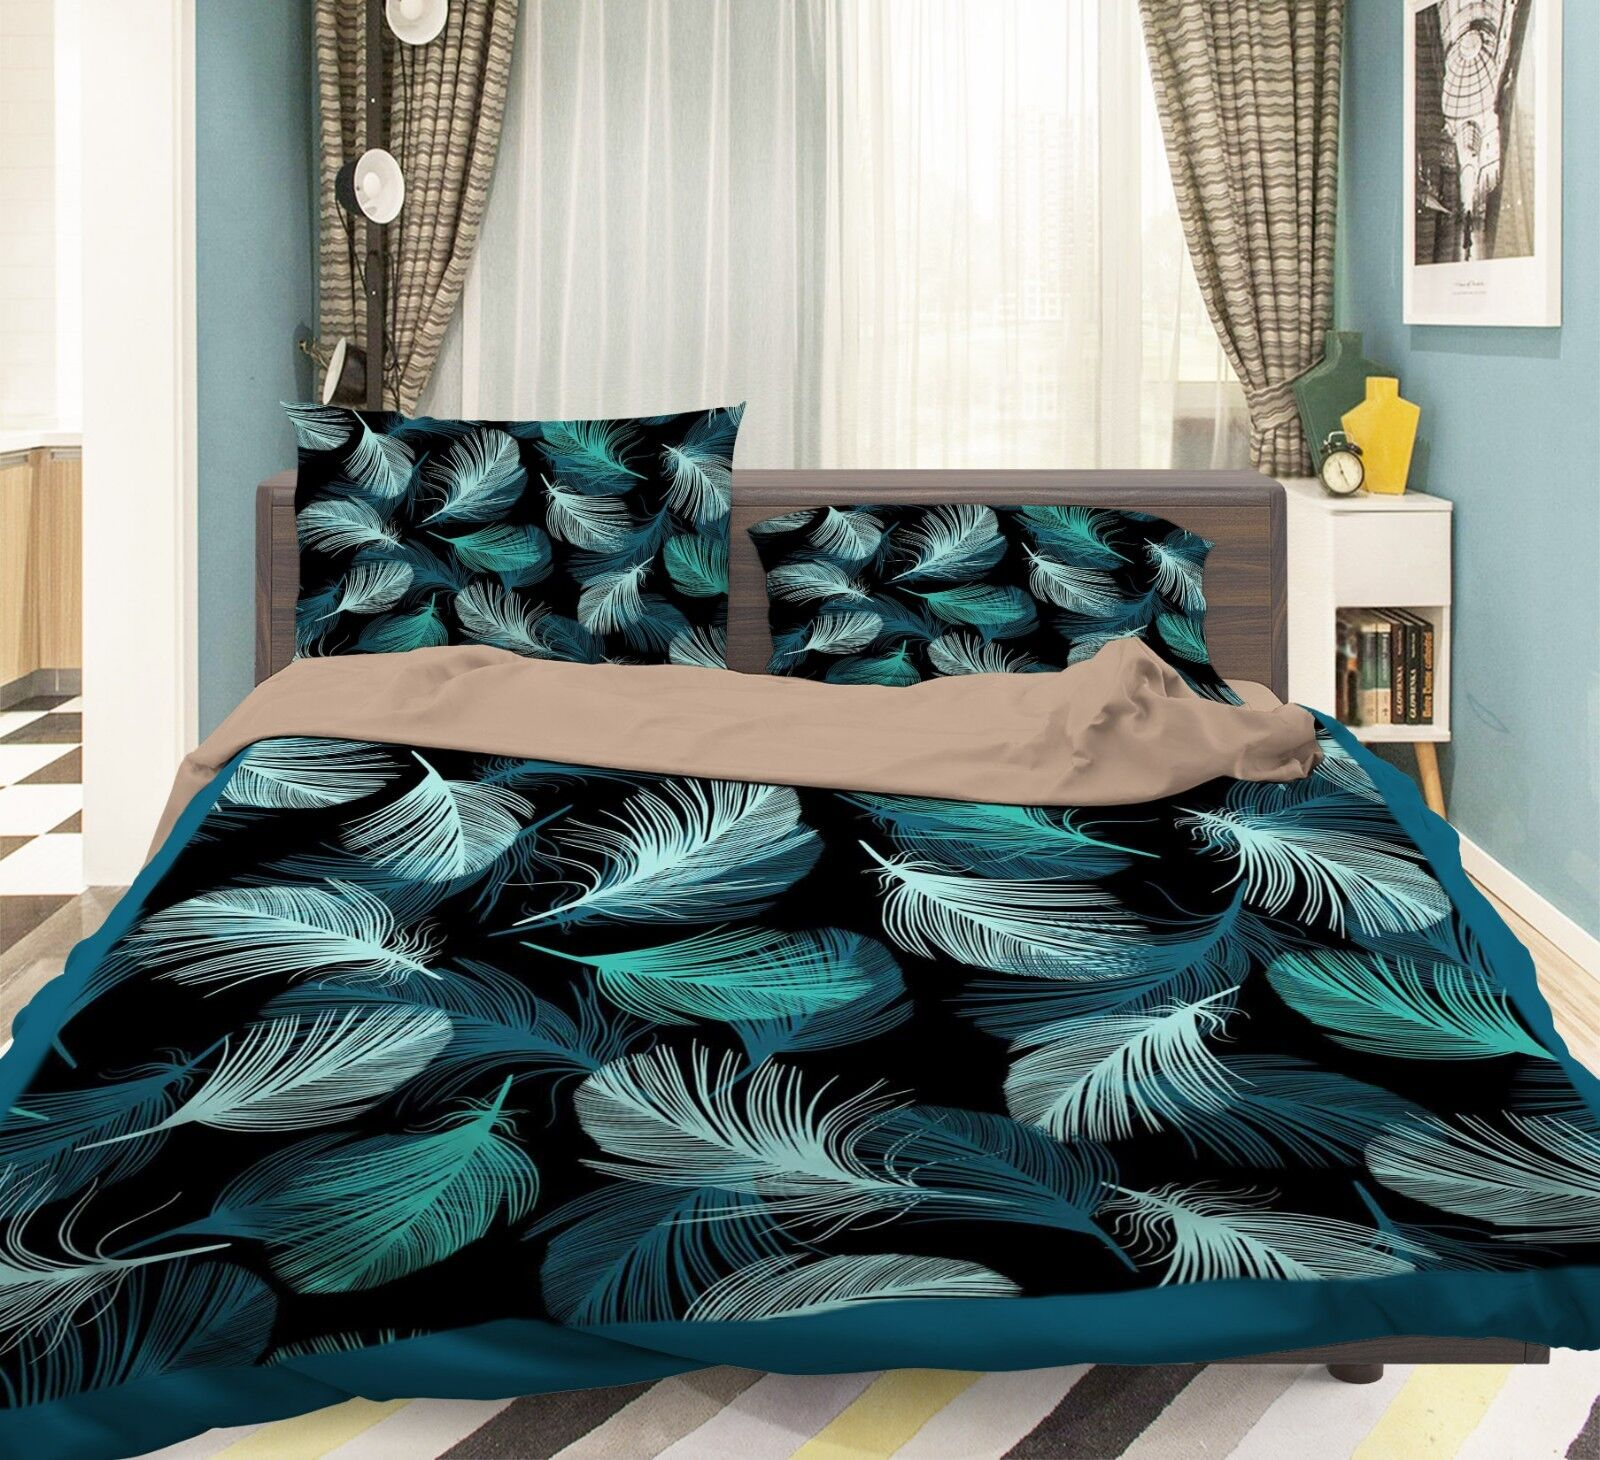 3D Green Feathers 78 Bed Pillowcases Quilt Duvet Cover Set Single Queen AU Carly